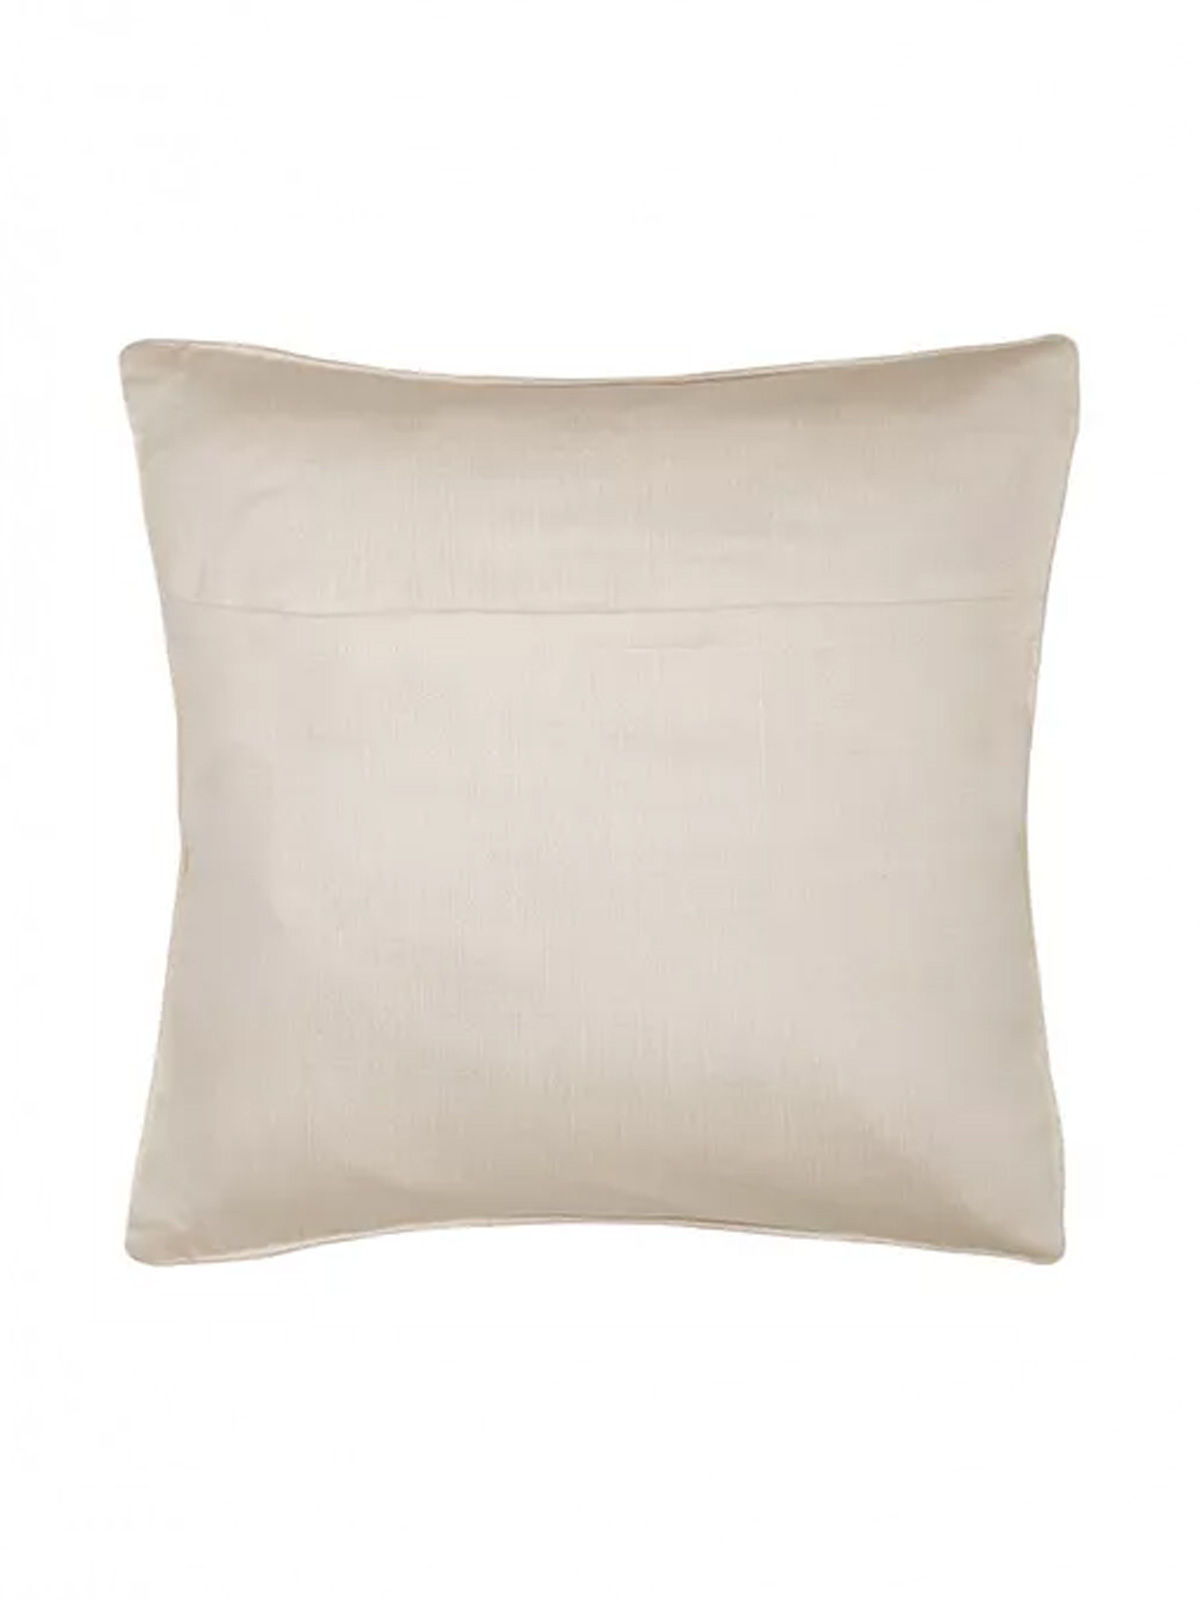 White-Green Embroidered Silk Cushion Cover with Marigold Motif